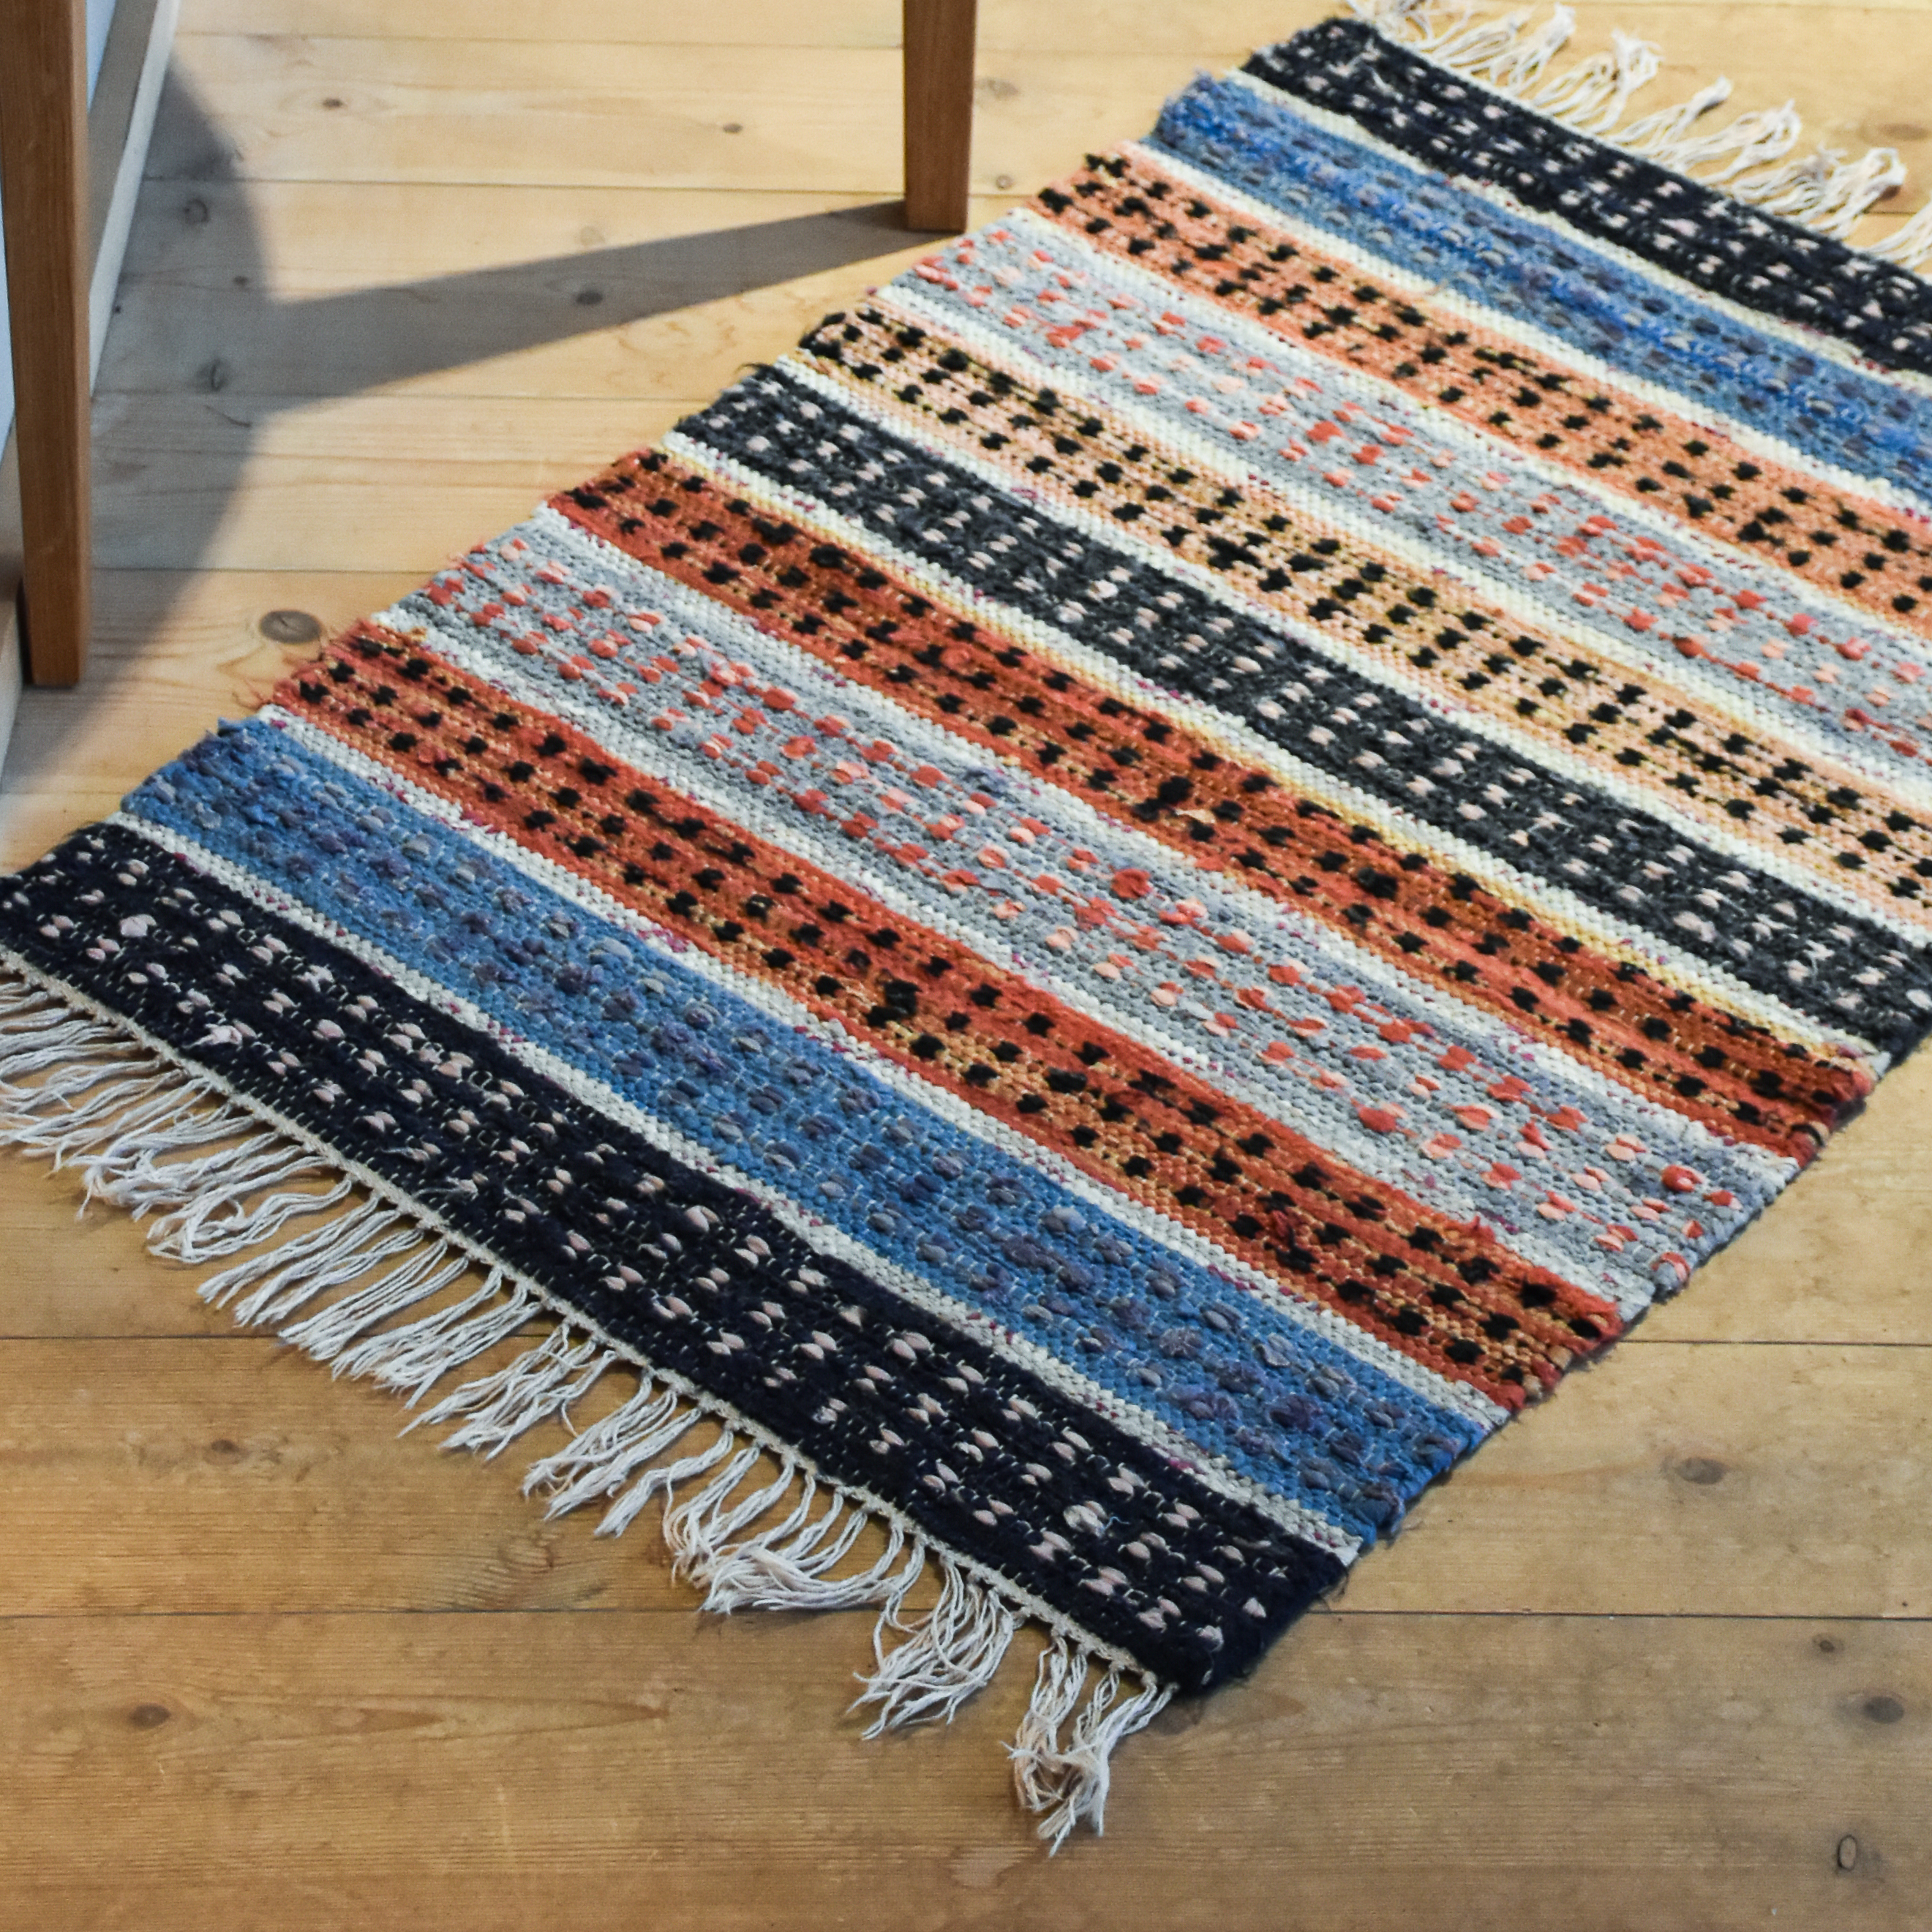 Make Rag Rugs How to make old fashioned rag rugs